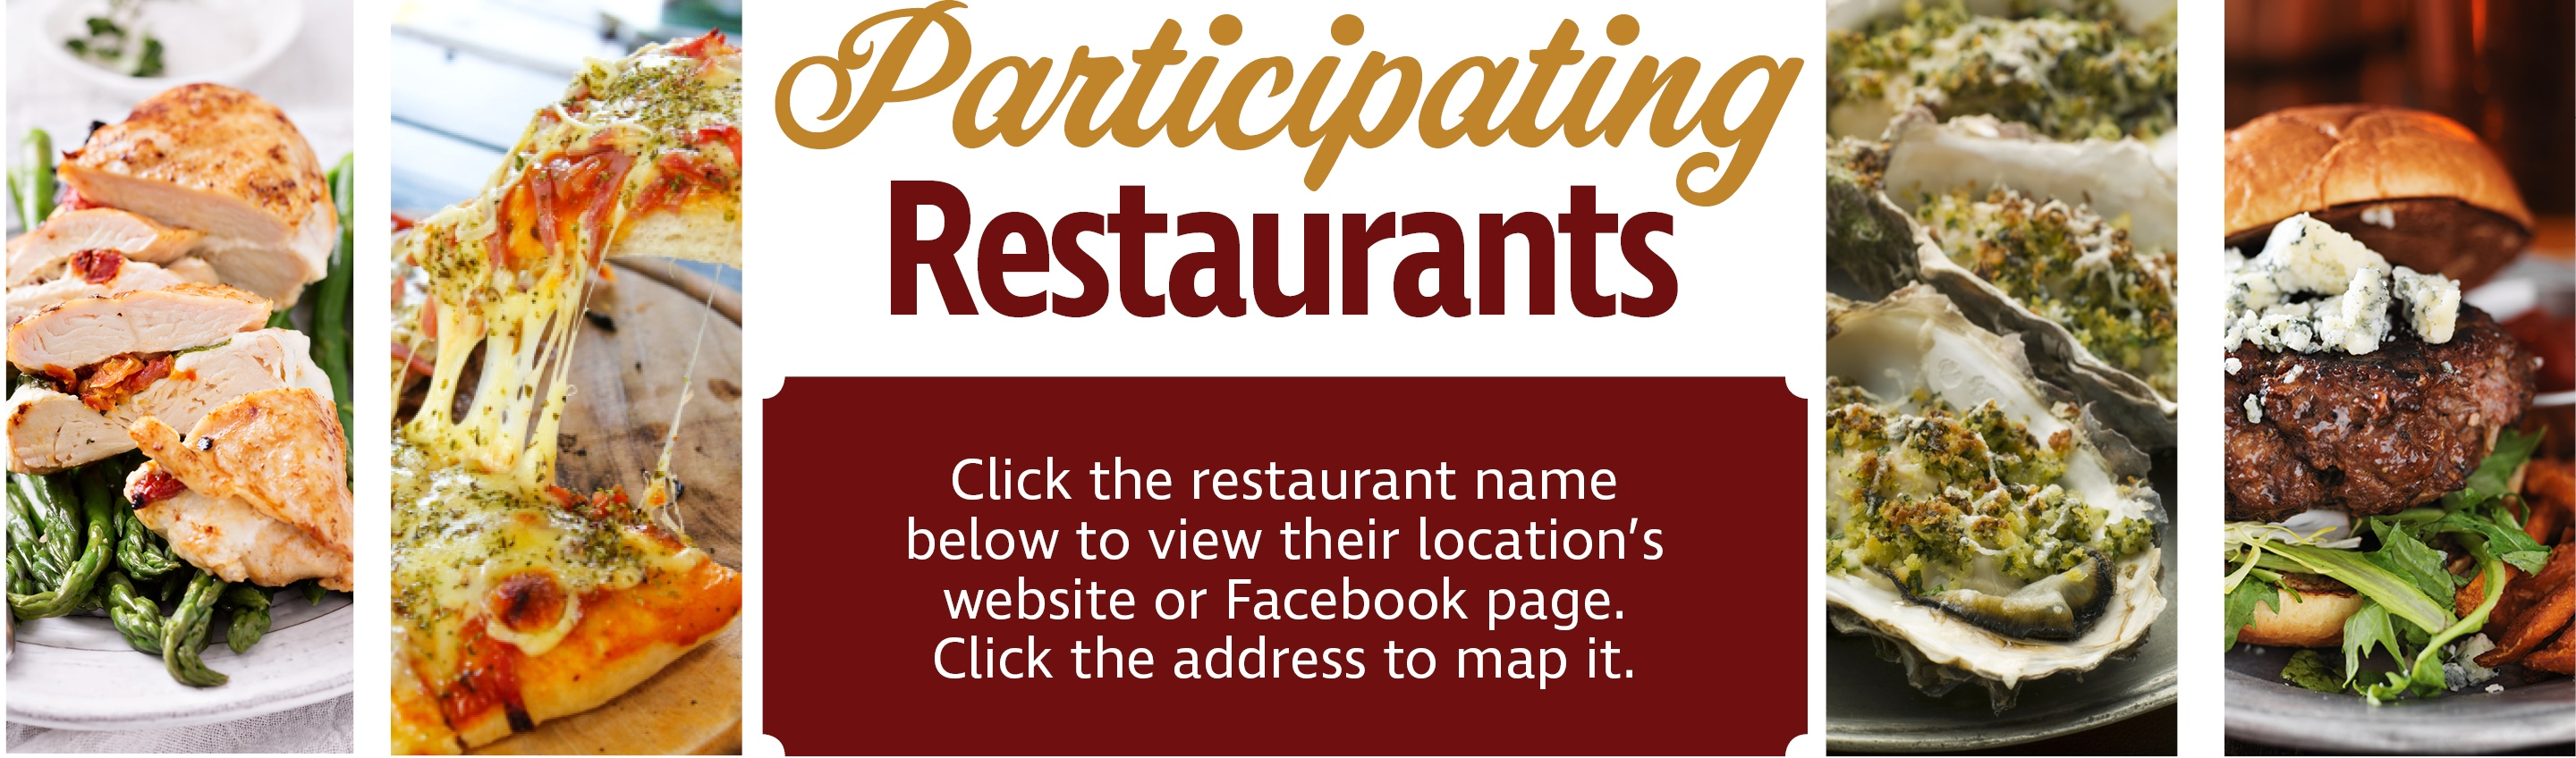 Participating Restaurant Banner 2.jpg